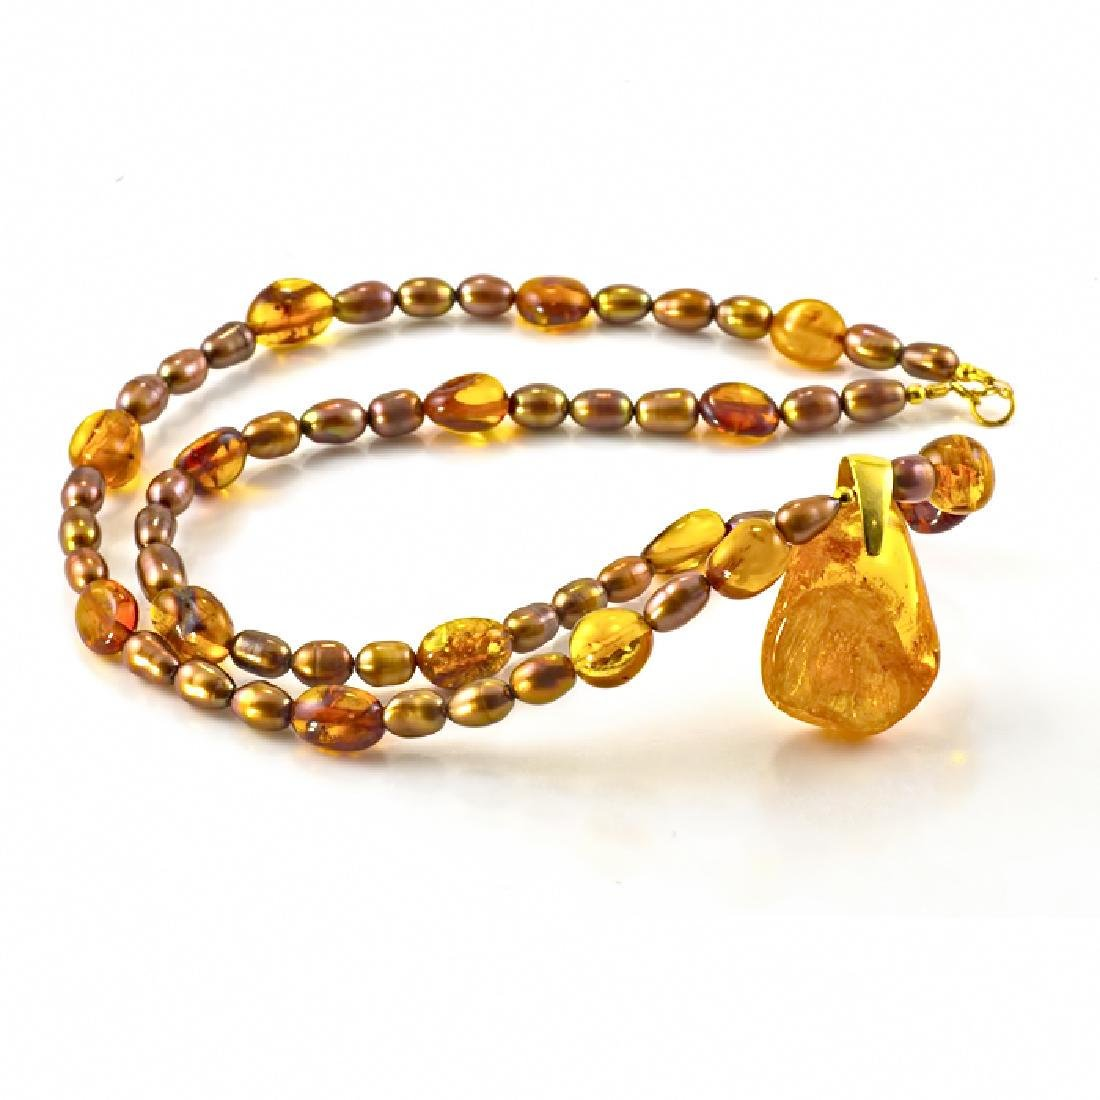 Golden Bronze Pearl and Amber necklace with Amber